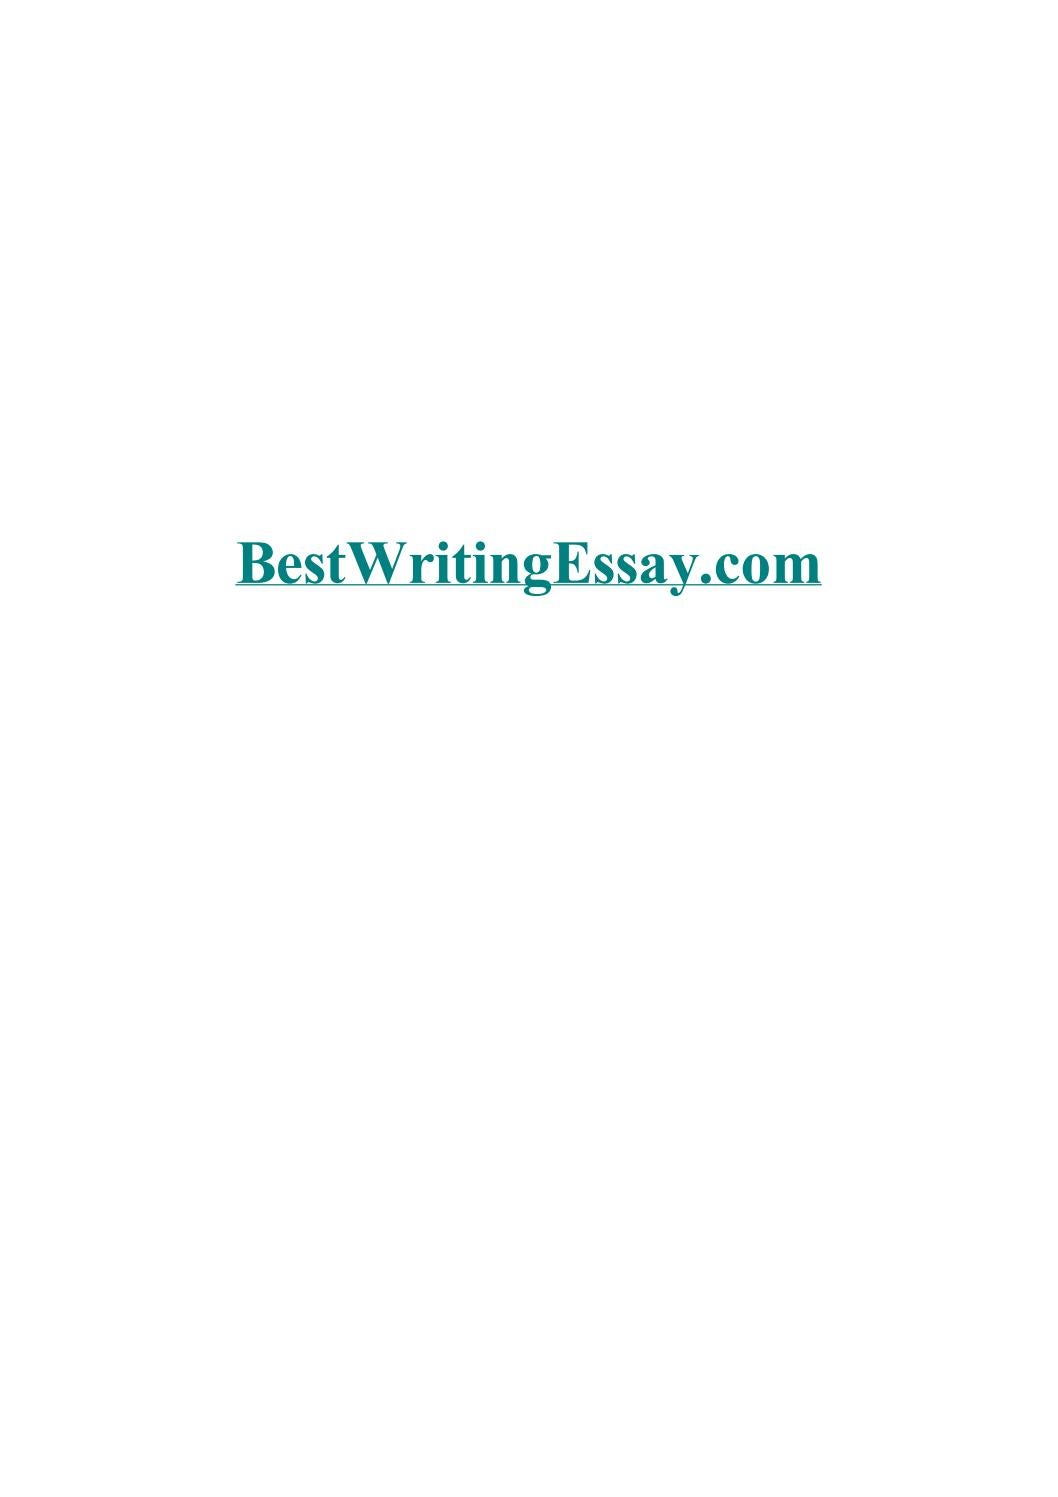 Thesis Statement For Persuasive Essay  Paper Essay also College Essay Samples Good Essay Topics For High School Students By Cherrieeieai  Dissertation Examples Business